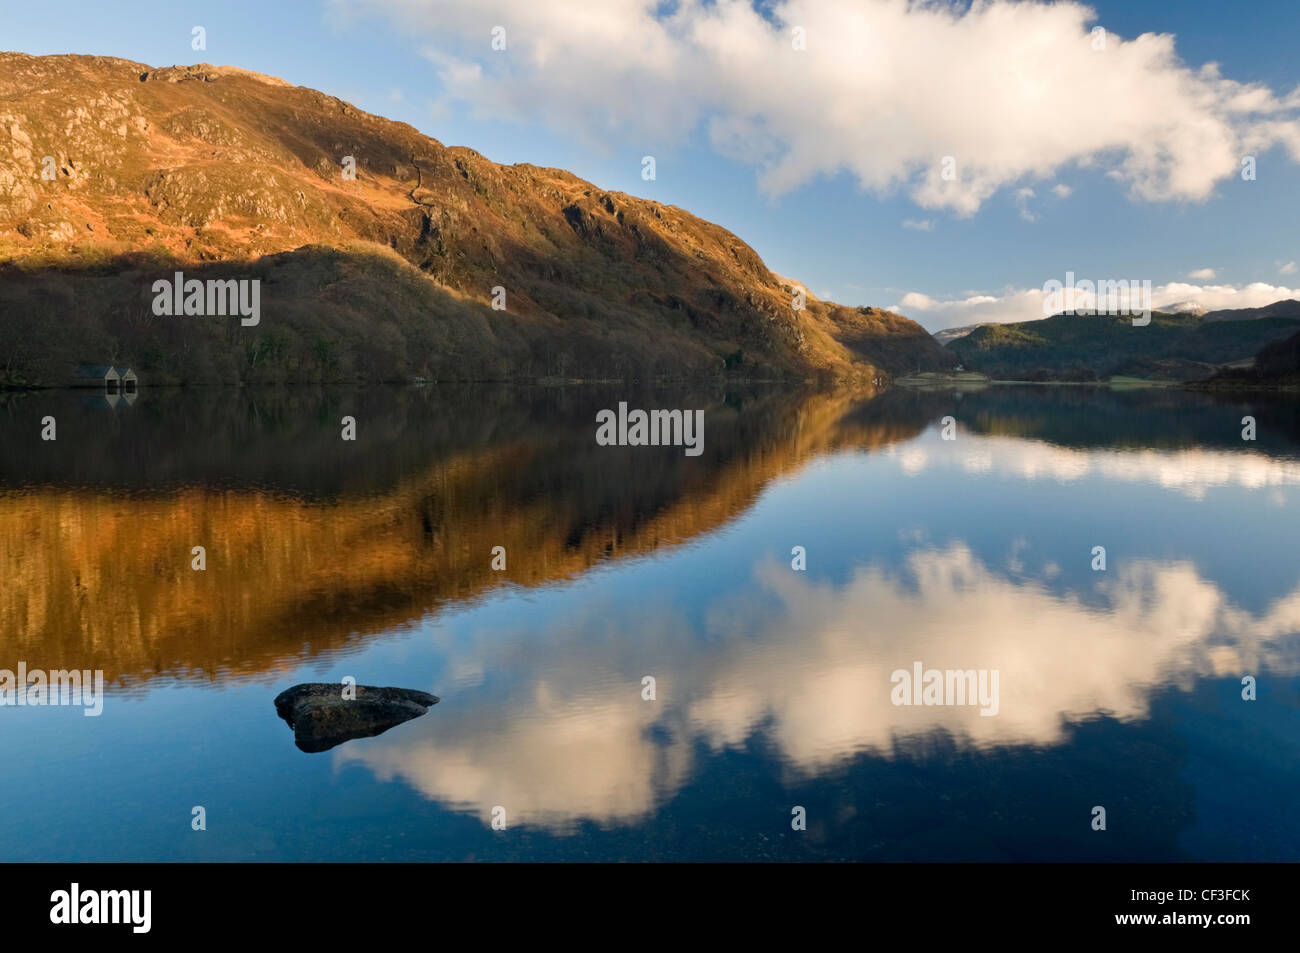 The sky reflected in Llyn Dinas lake in the Nant Gwynant valley. - Stock Image